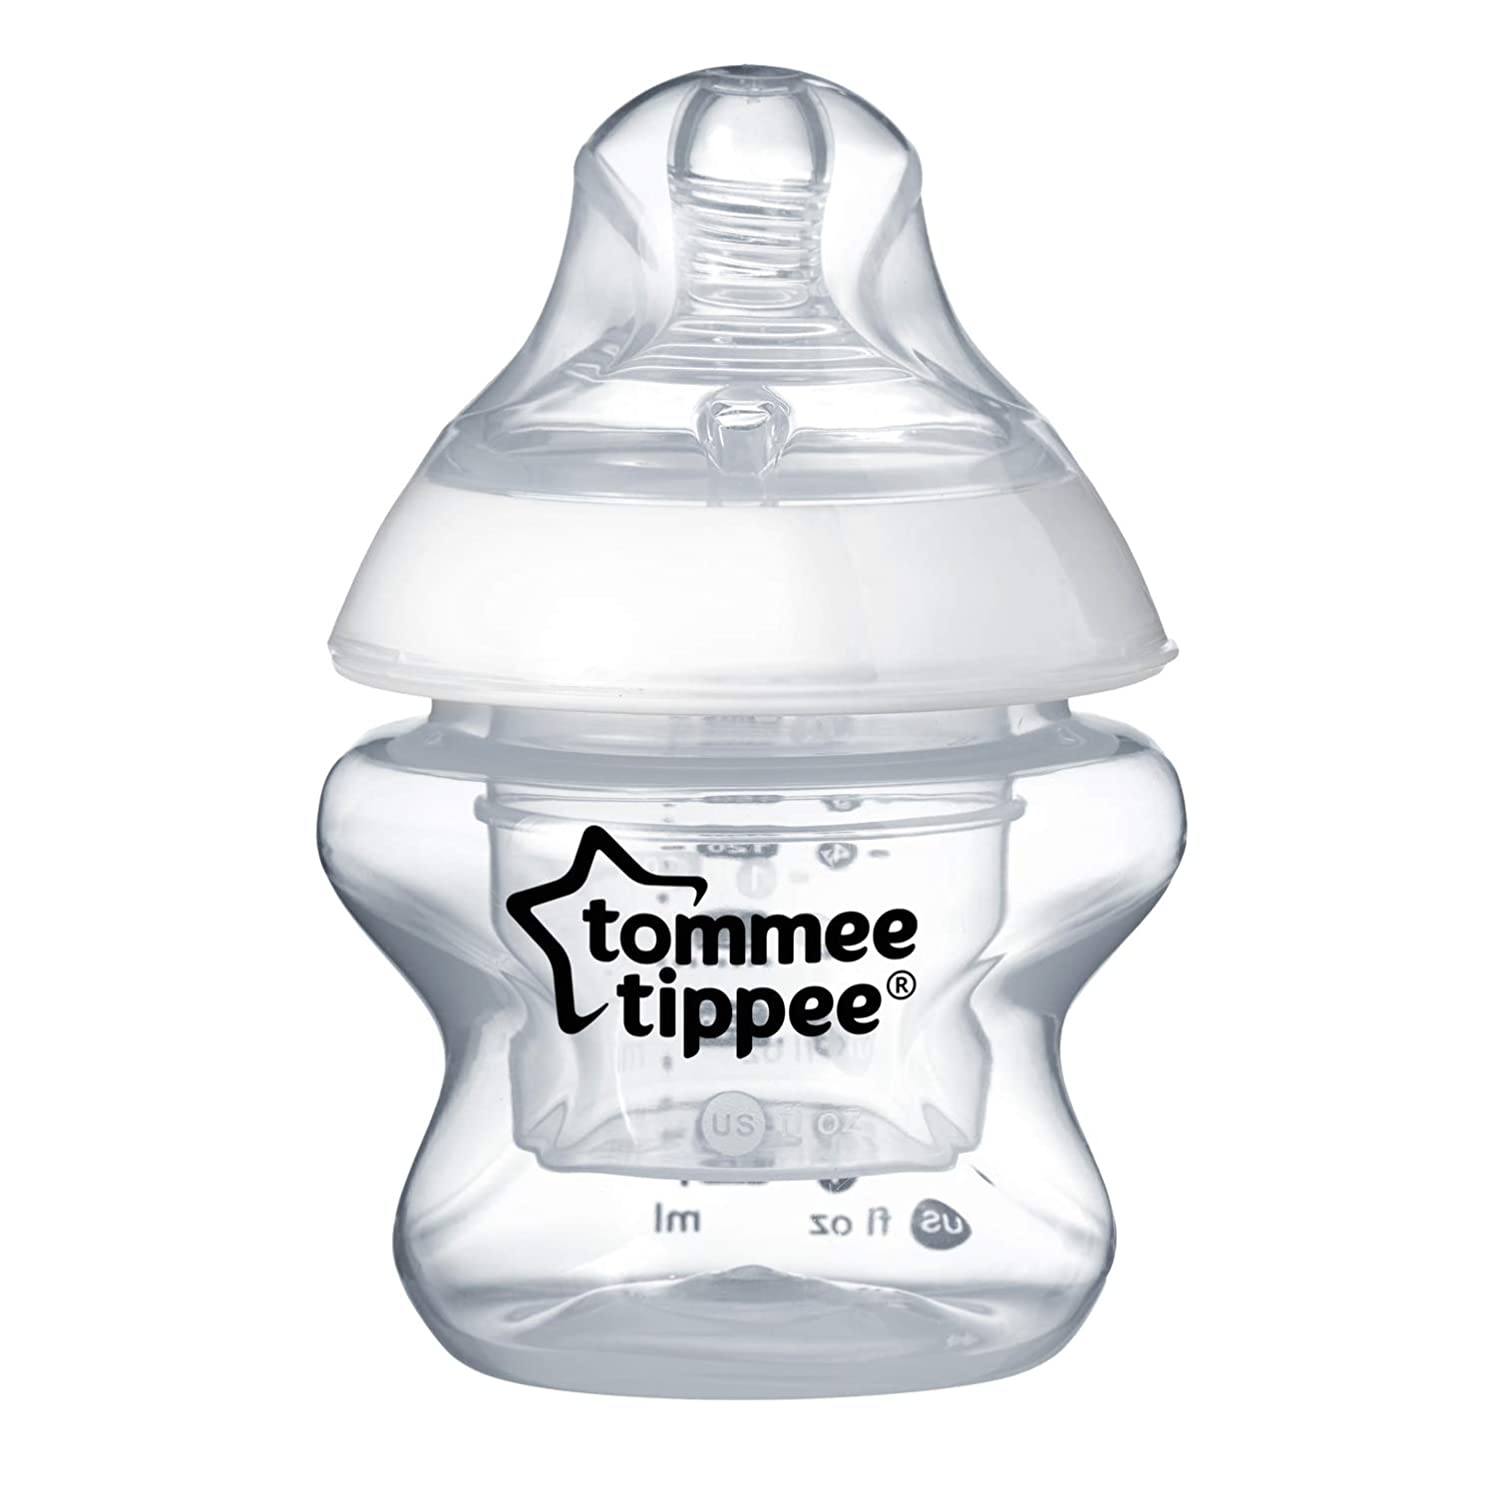 Tommee Tippee Closer To Nature First Feed Baby Bottle, Extra Slow Flow, 5 Ounce, 1 Count 52254010